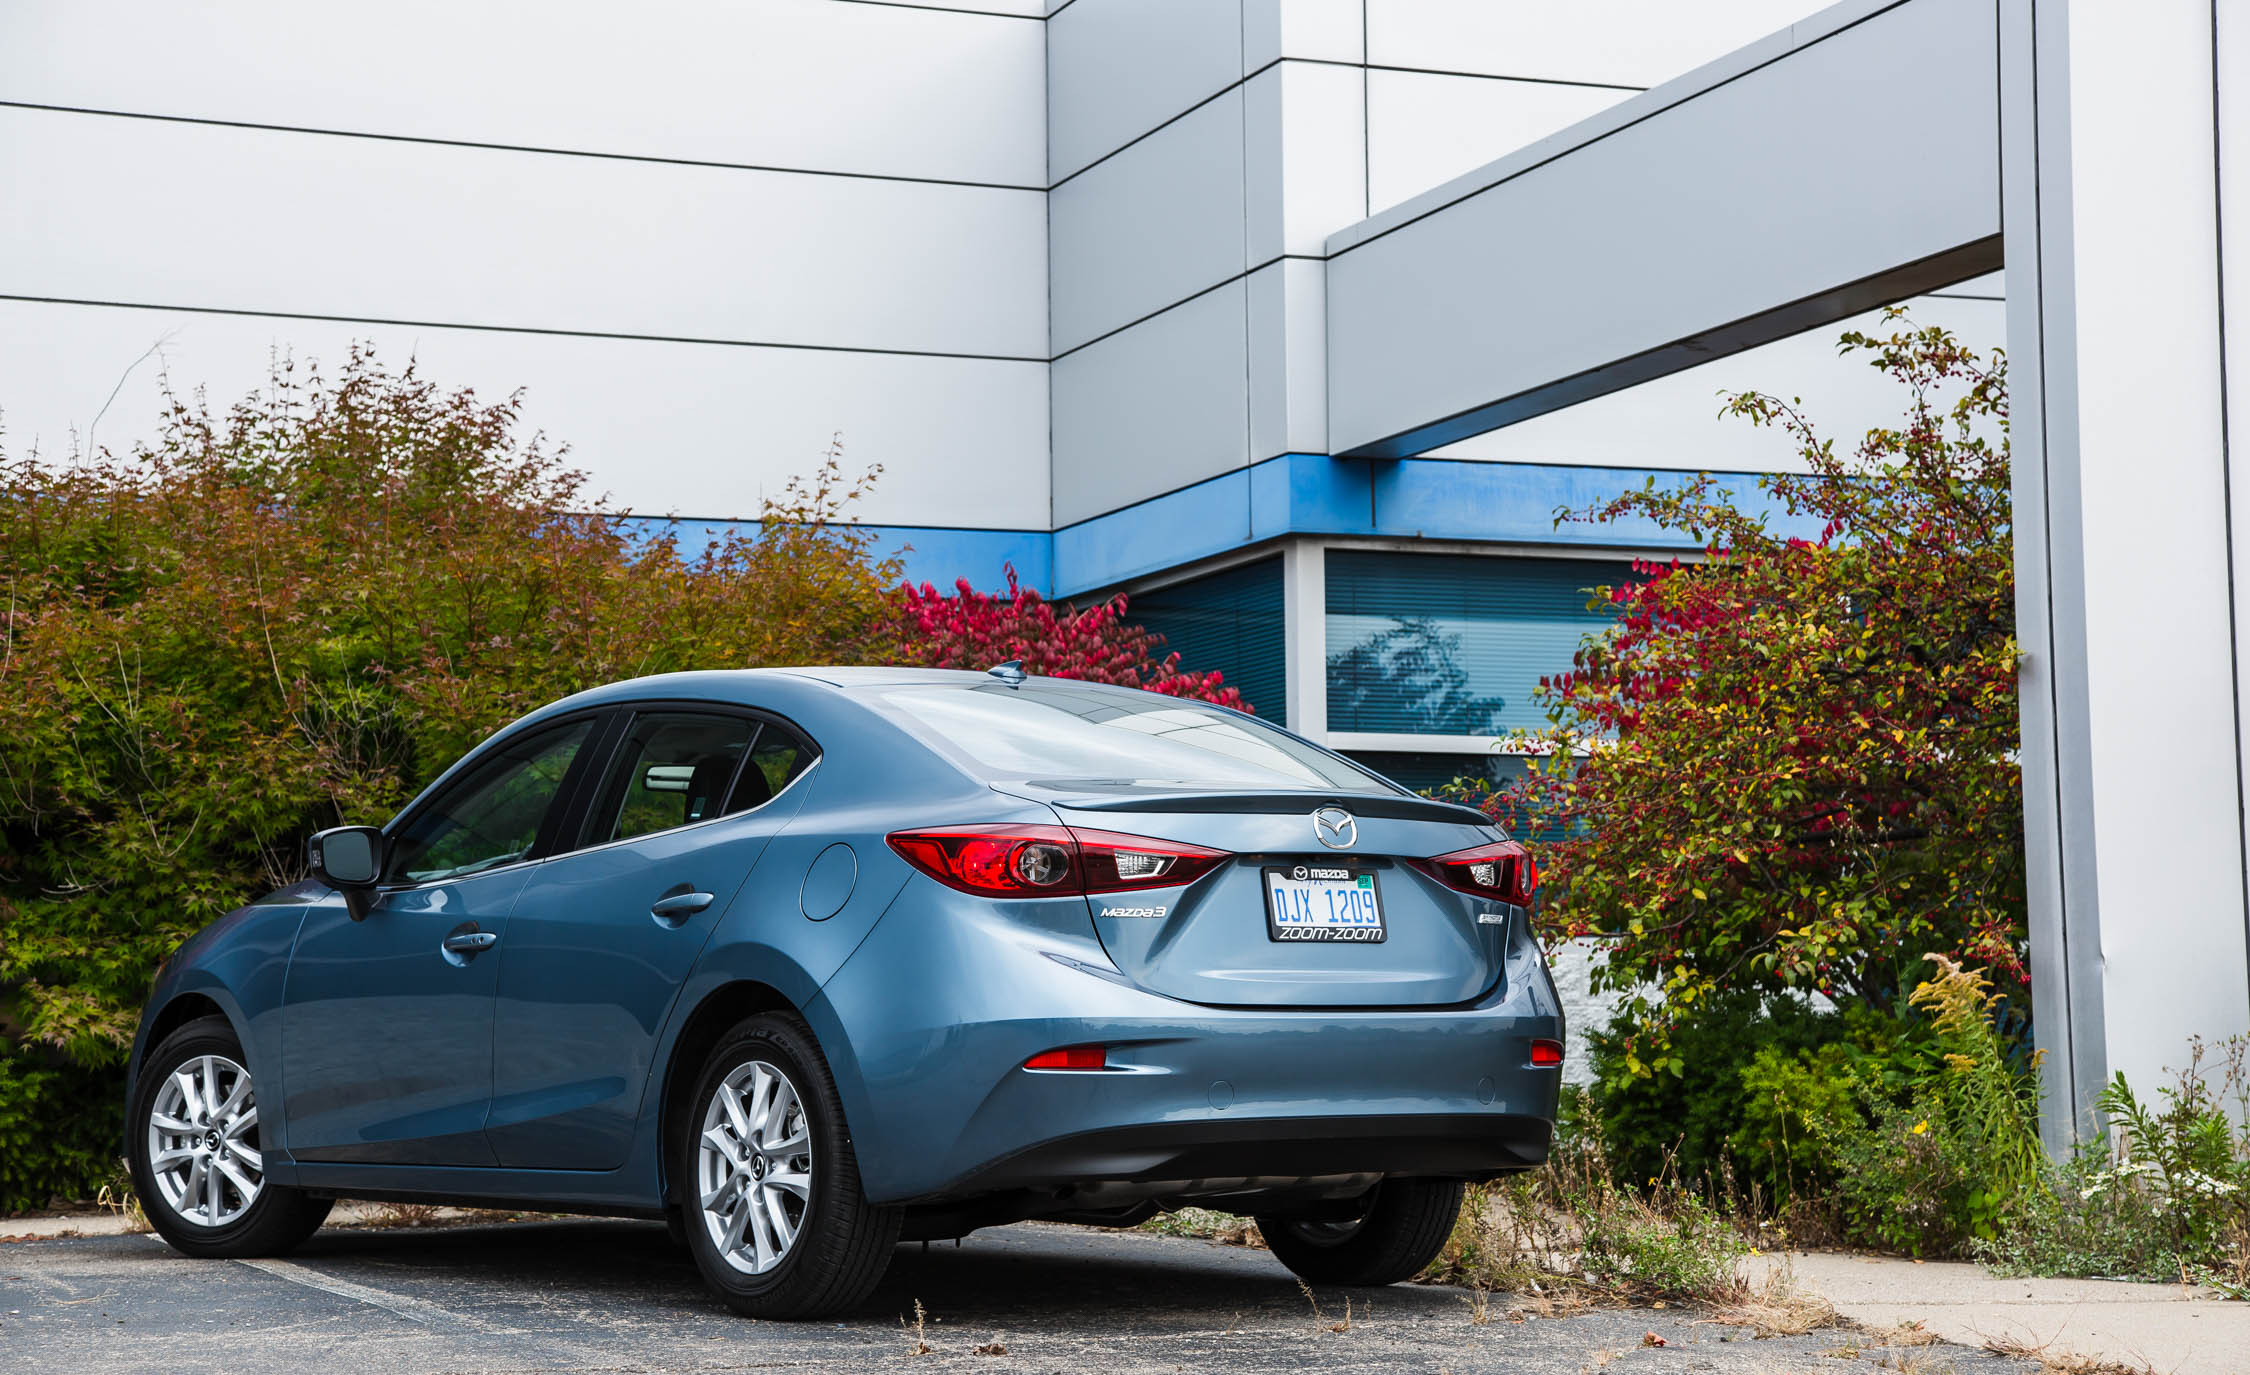 2016 Mazda 3 (View 11 of 22)